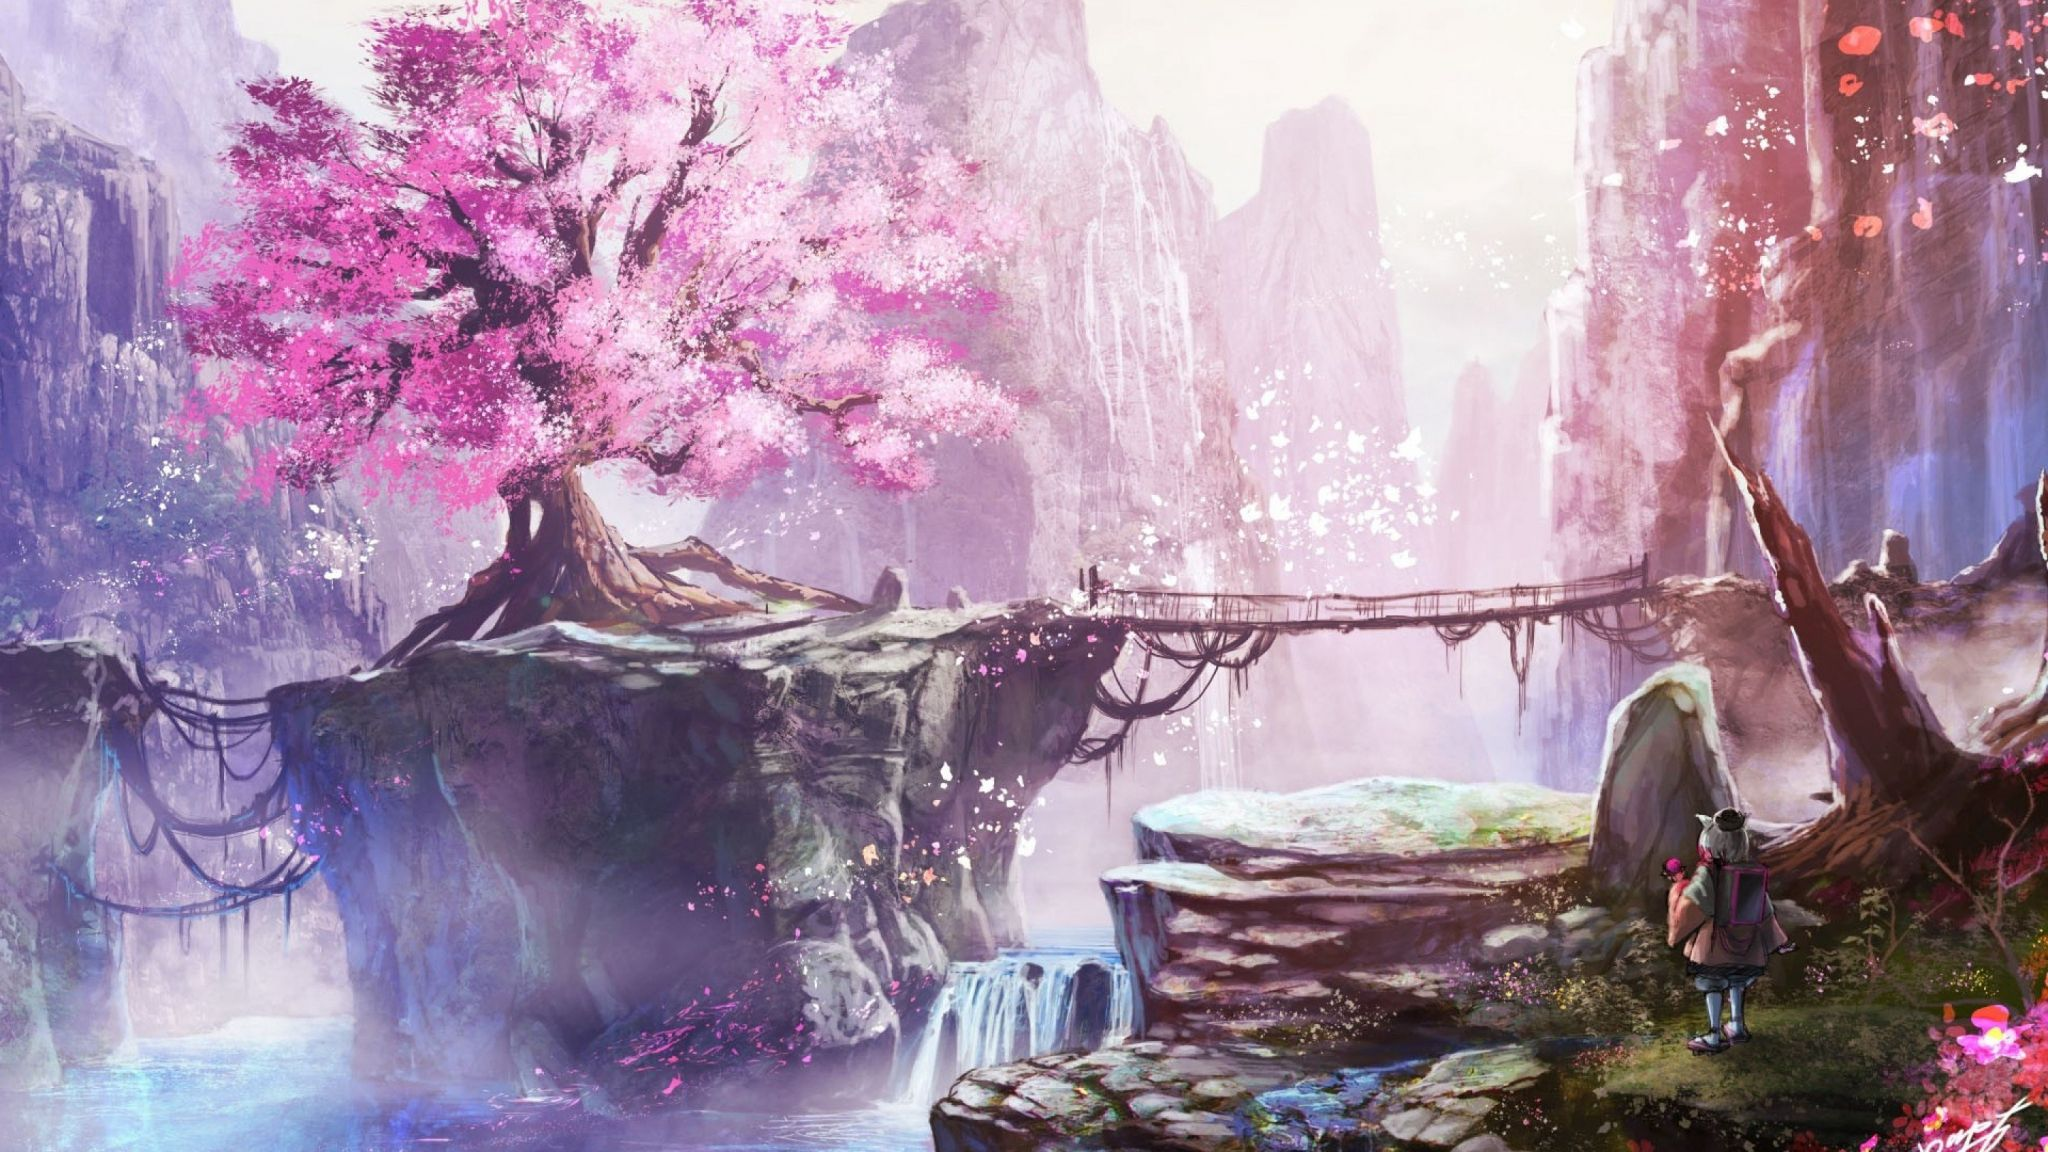 Anime Cherry Blossom Tree Wallpaper In 2048x1152 Resolution